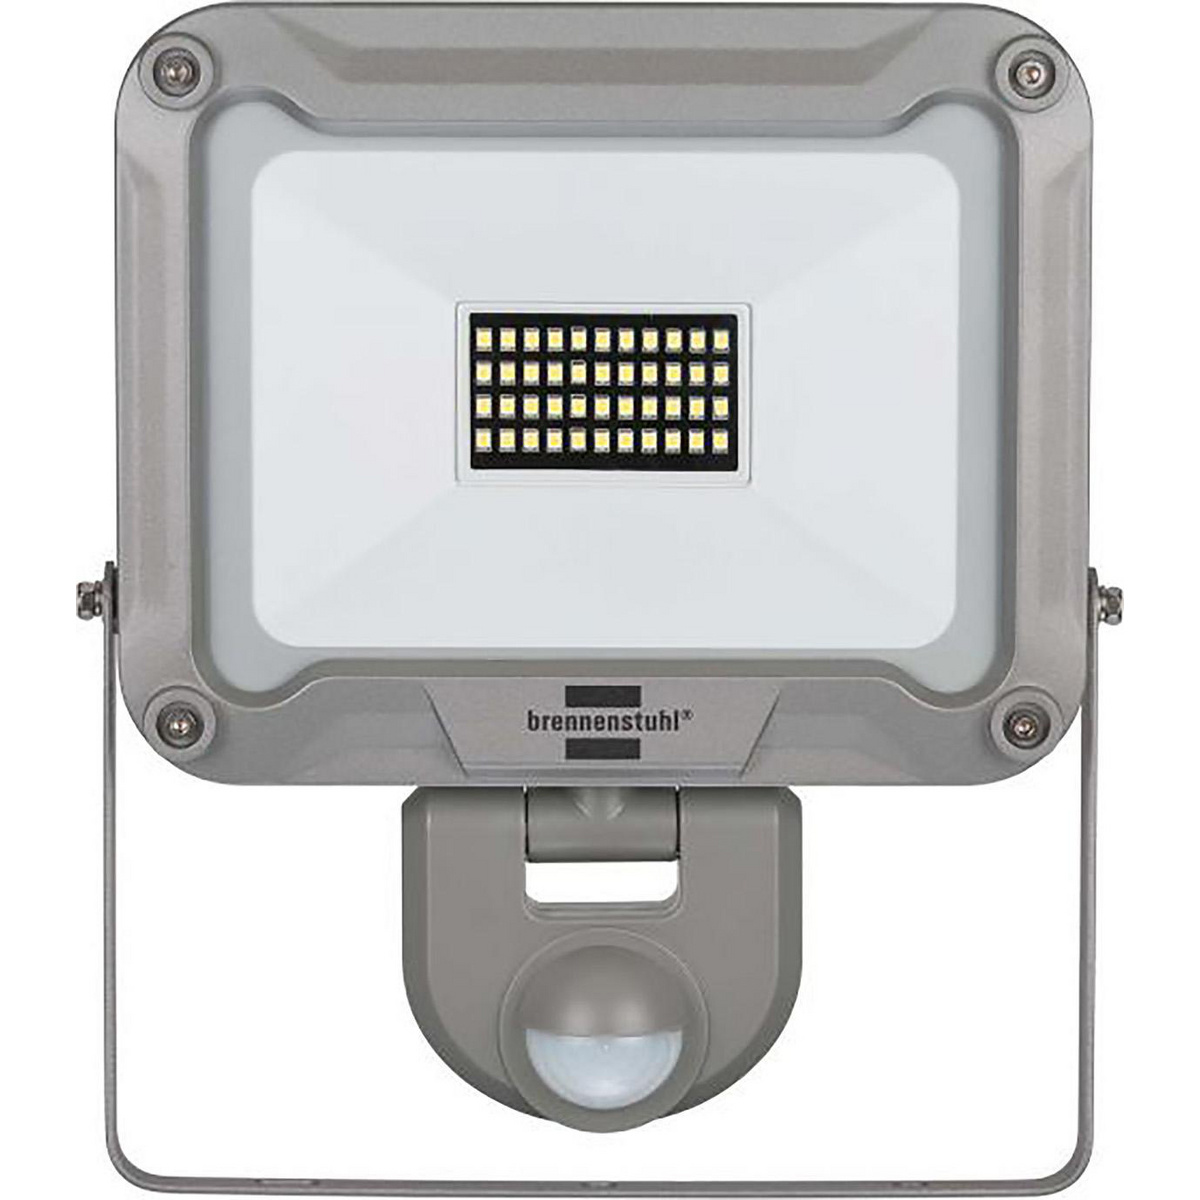 LED Floodlight met Sensor, 30 W, 2930 lm, Grijs